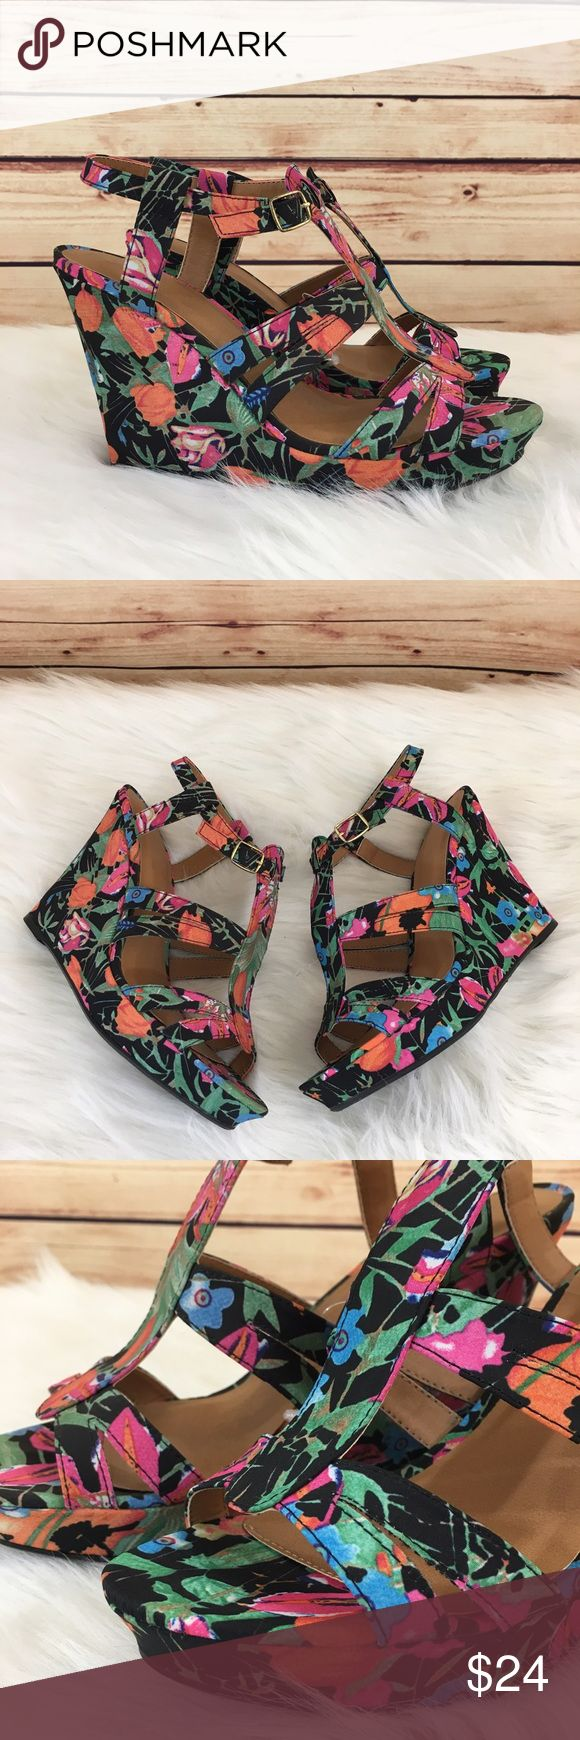 """Tropical wedges size 9 (brand new) Brand new / Tropical wedges Size 9, fits true to size Gold hardware / strap and buckle closure  Platform height: 5"""" *Color may vary in diff lighting  *Bottoms may show some shelf wear *Comes without shoebox but will be packaged in a usps shipping box.  ✨Bundle discounts offered, just ask. (Shoes are weighty, so please be mindful of the 5 lb max limit) Shoes Wedges"""